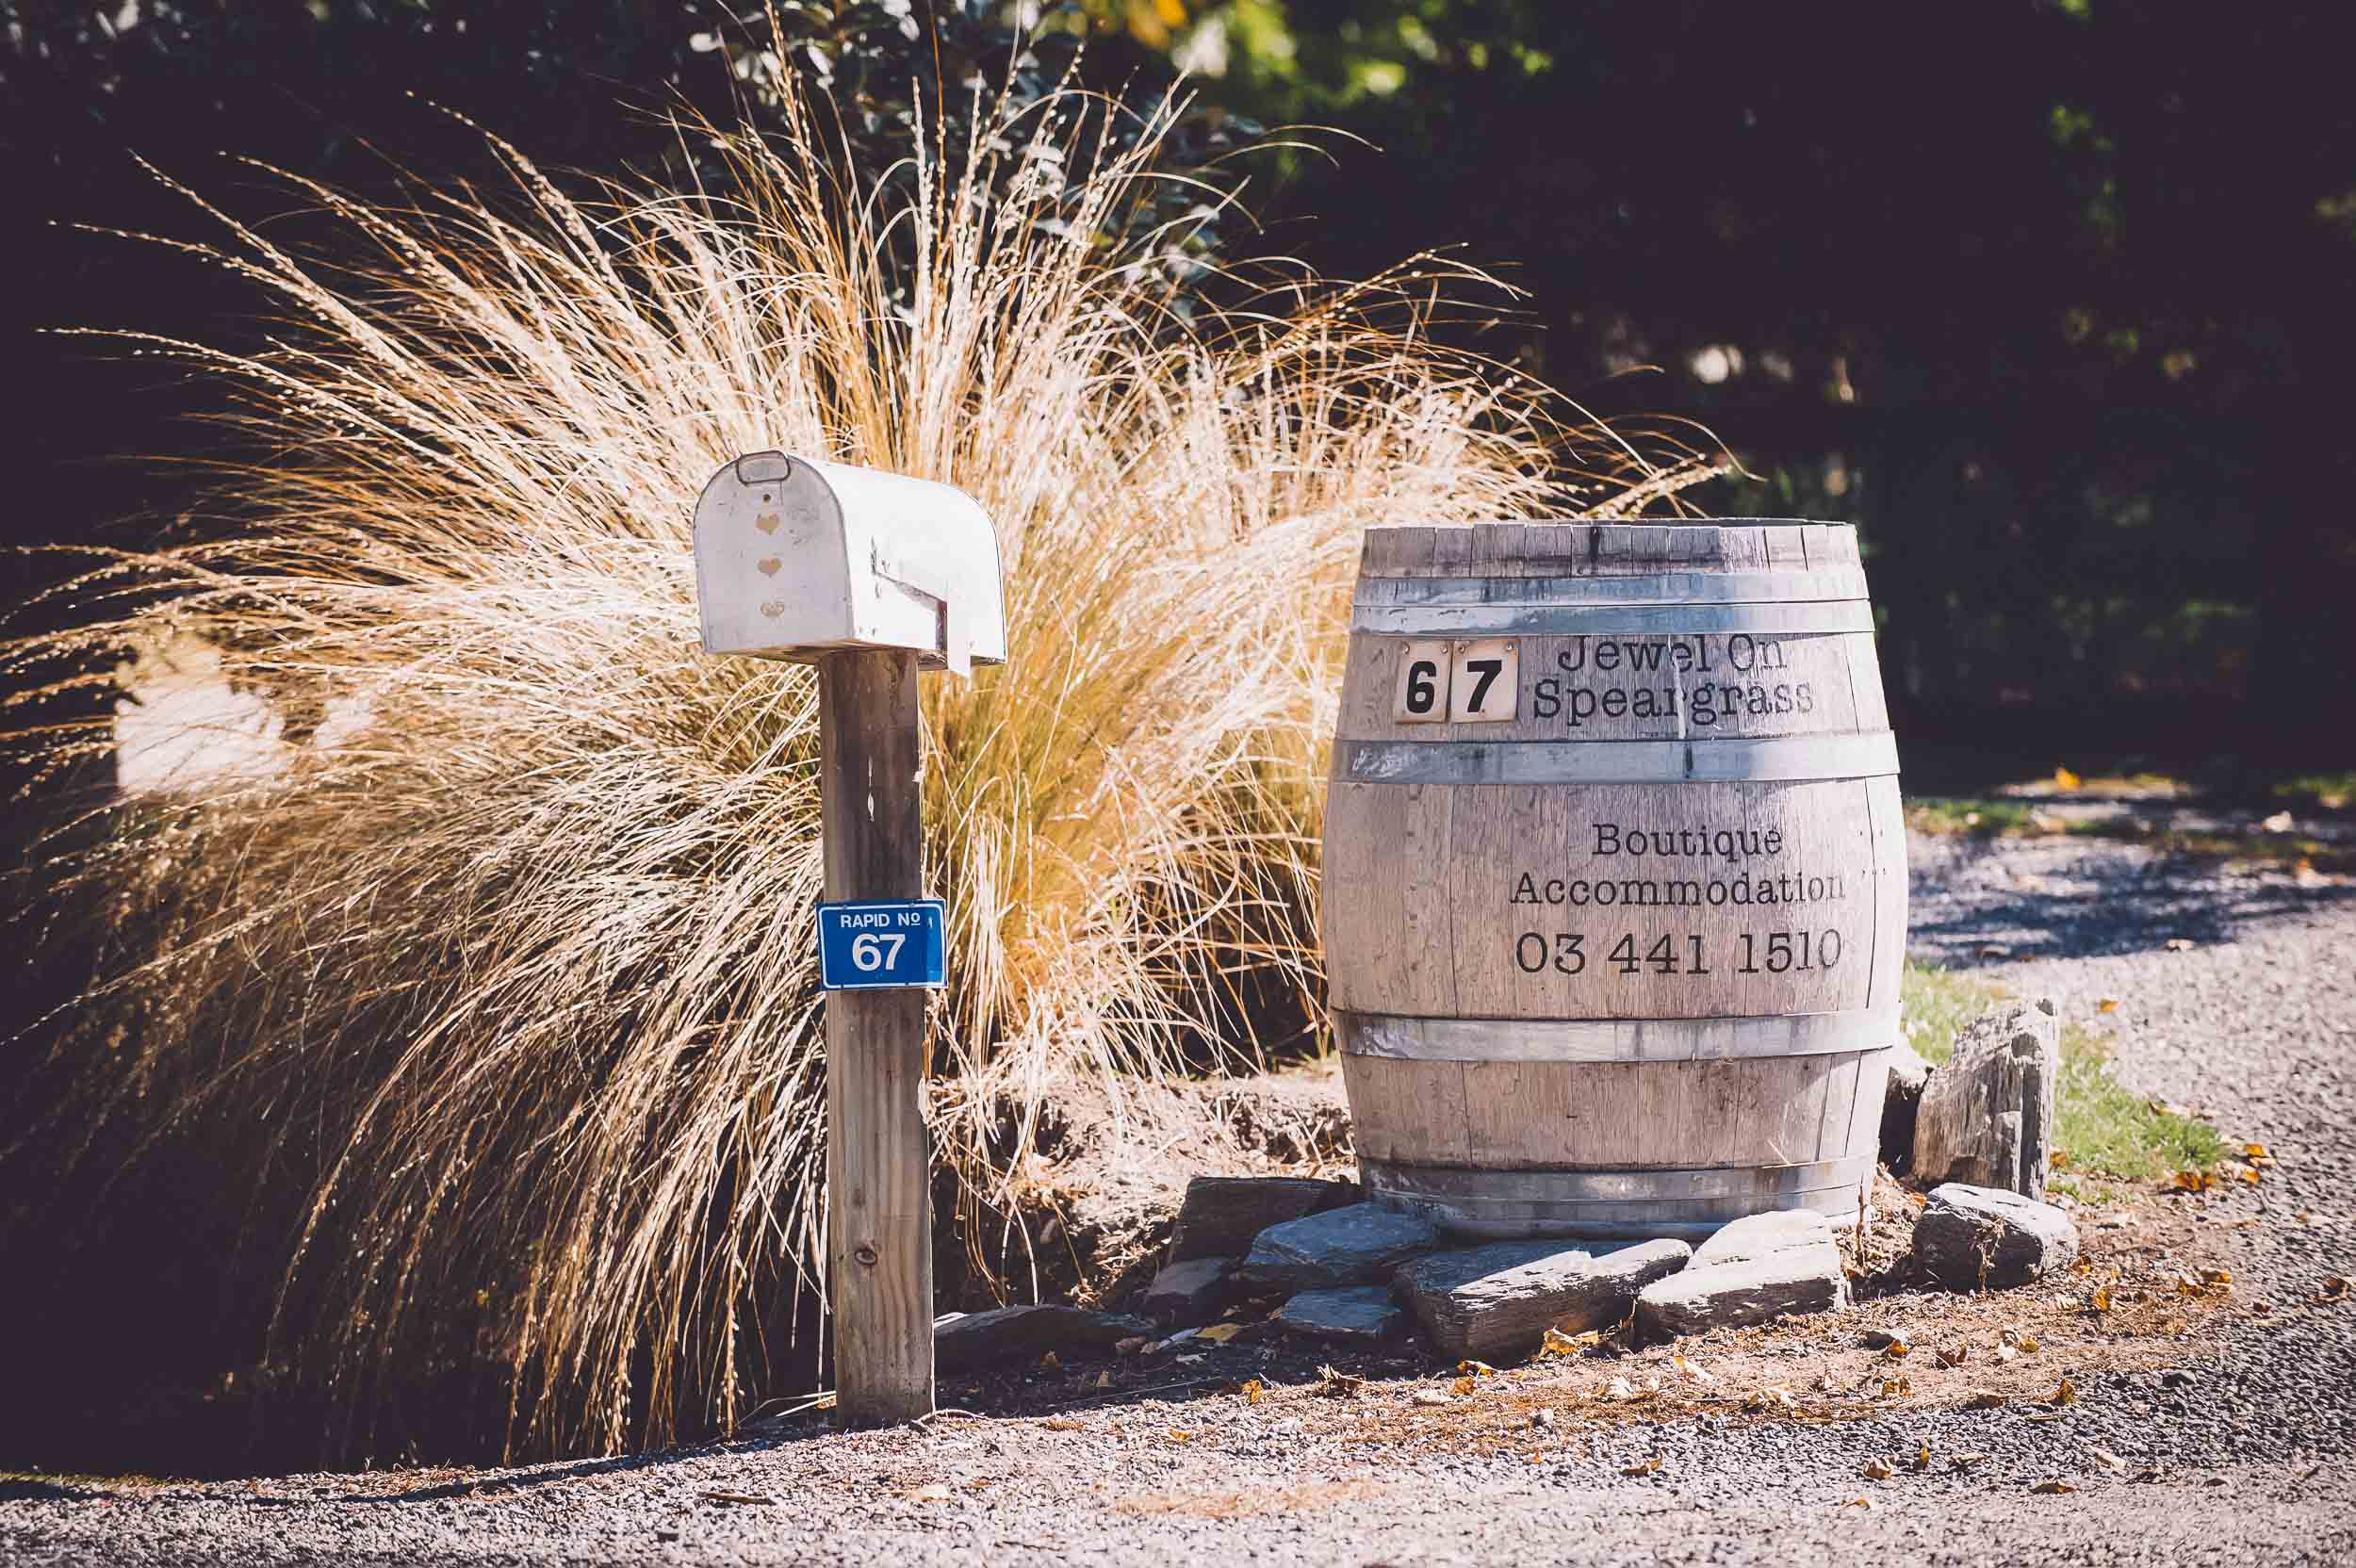 Jewel On Speargrass Getting Ready Location Queenstown Wedding Vendor accommodation venue